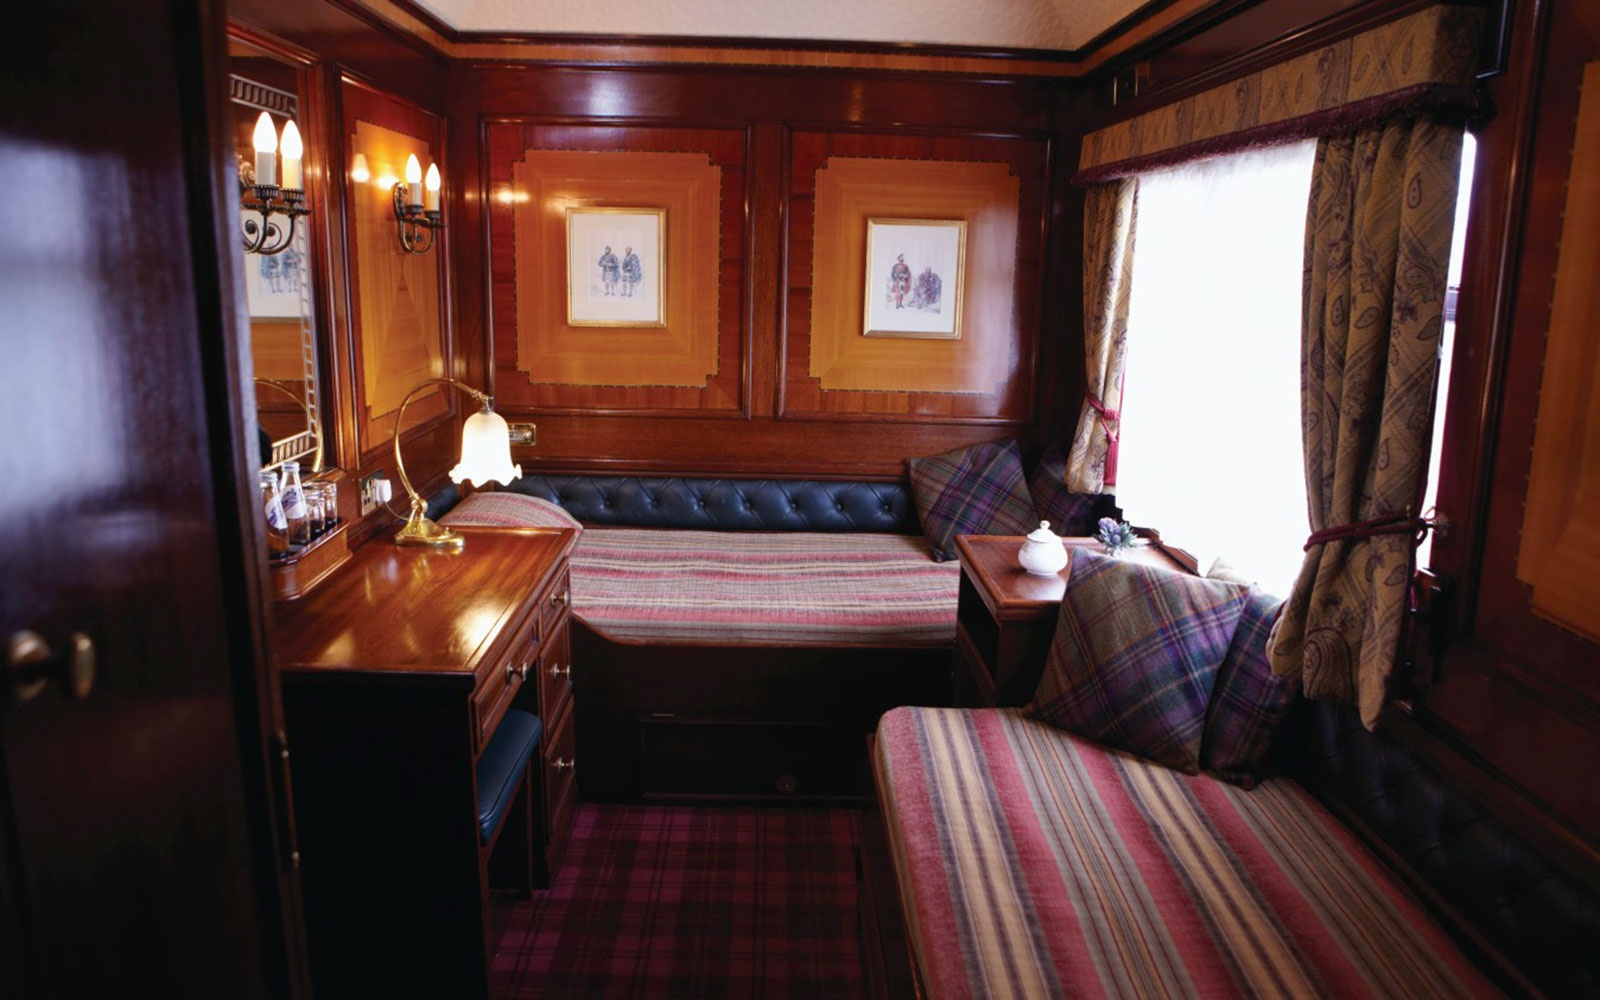 201305-w-best-places-to-travel-after-divorce-scotland-rail